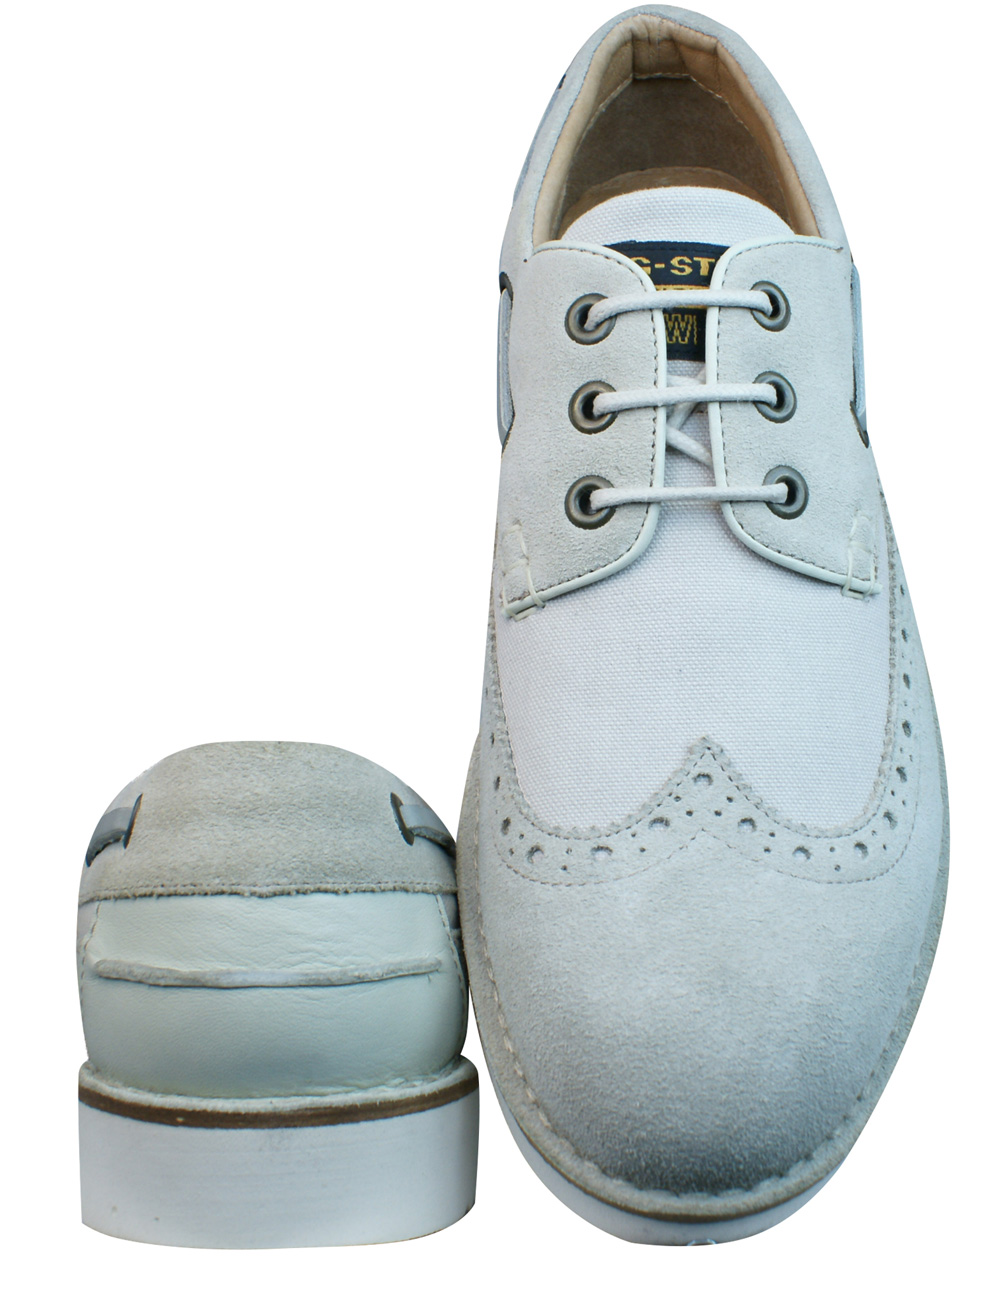 G-Star Garret II Rothko Mix Mens Suede Shoes - Off White ...